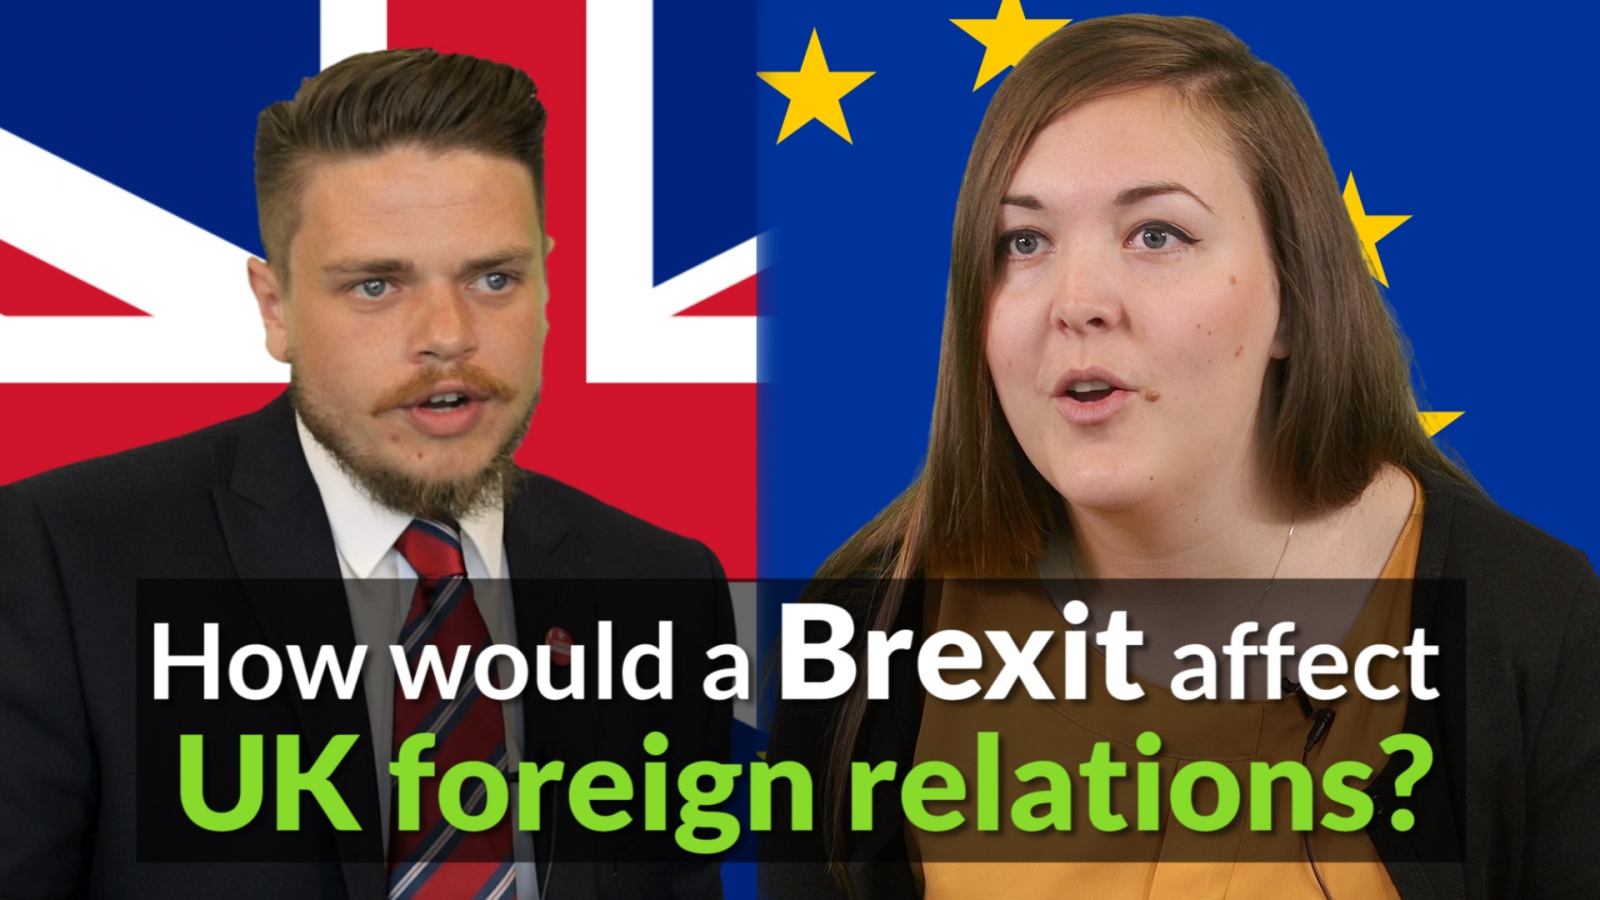 How would a Brexit affect UK foreign relations with Europe and beyond?